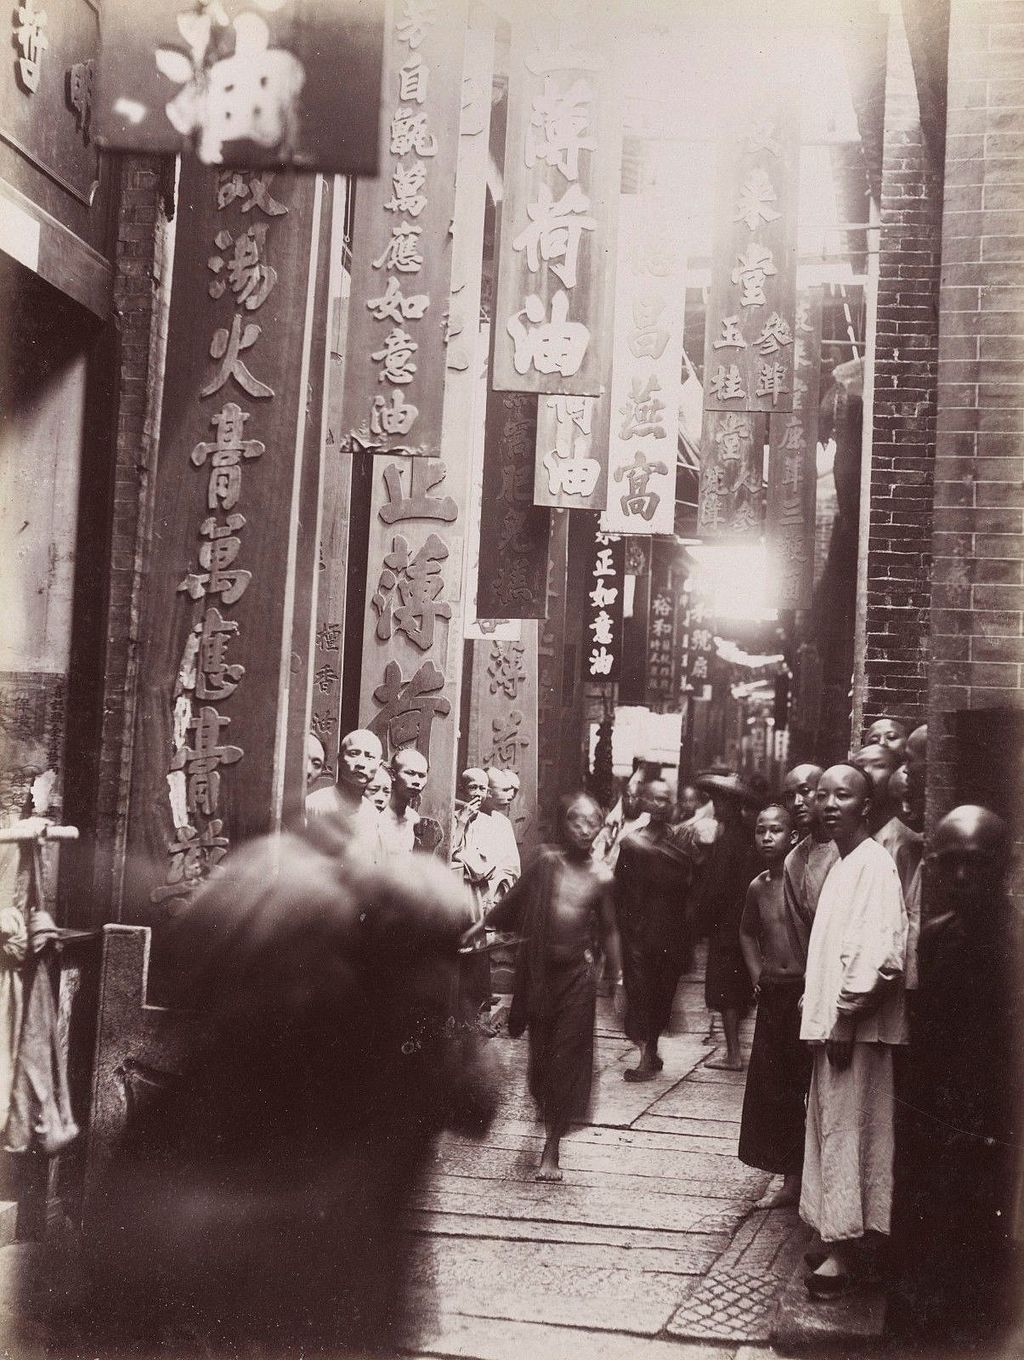 A deep, narrow street lined with tall signs, and people walking in the road.